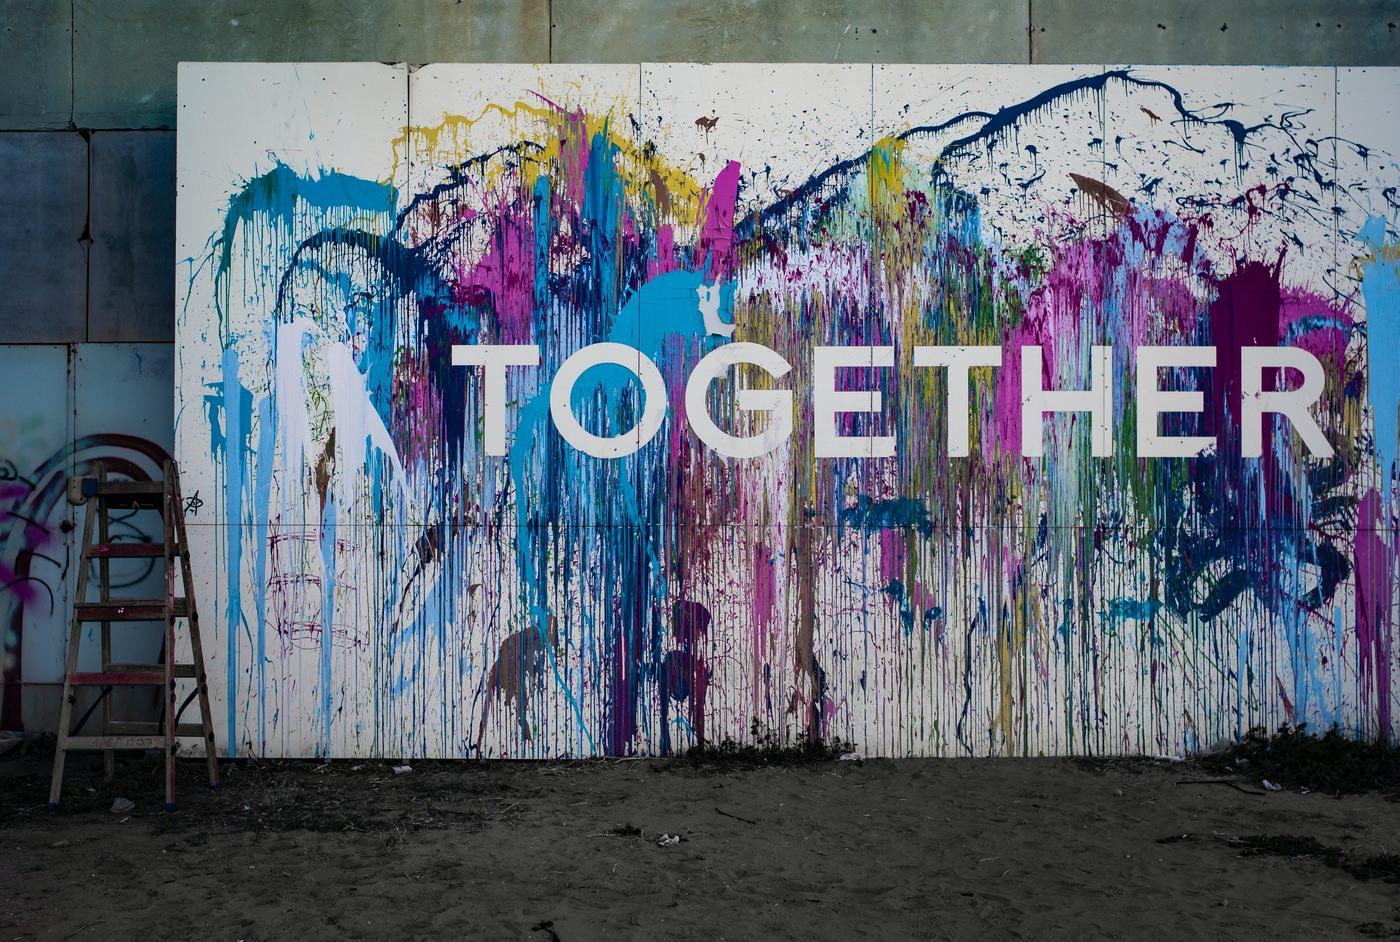 Together painted wall